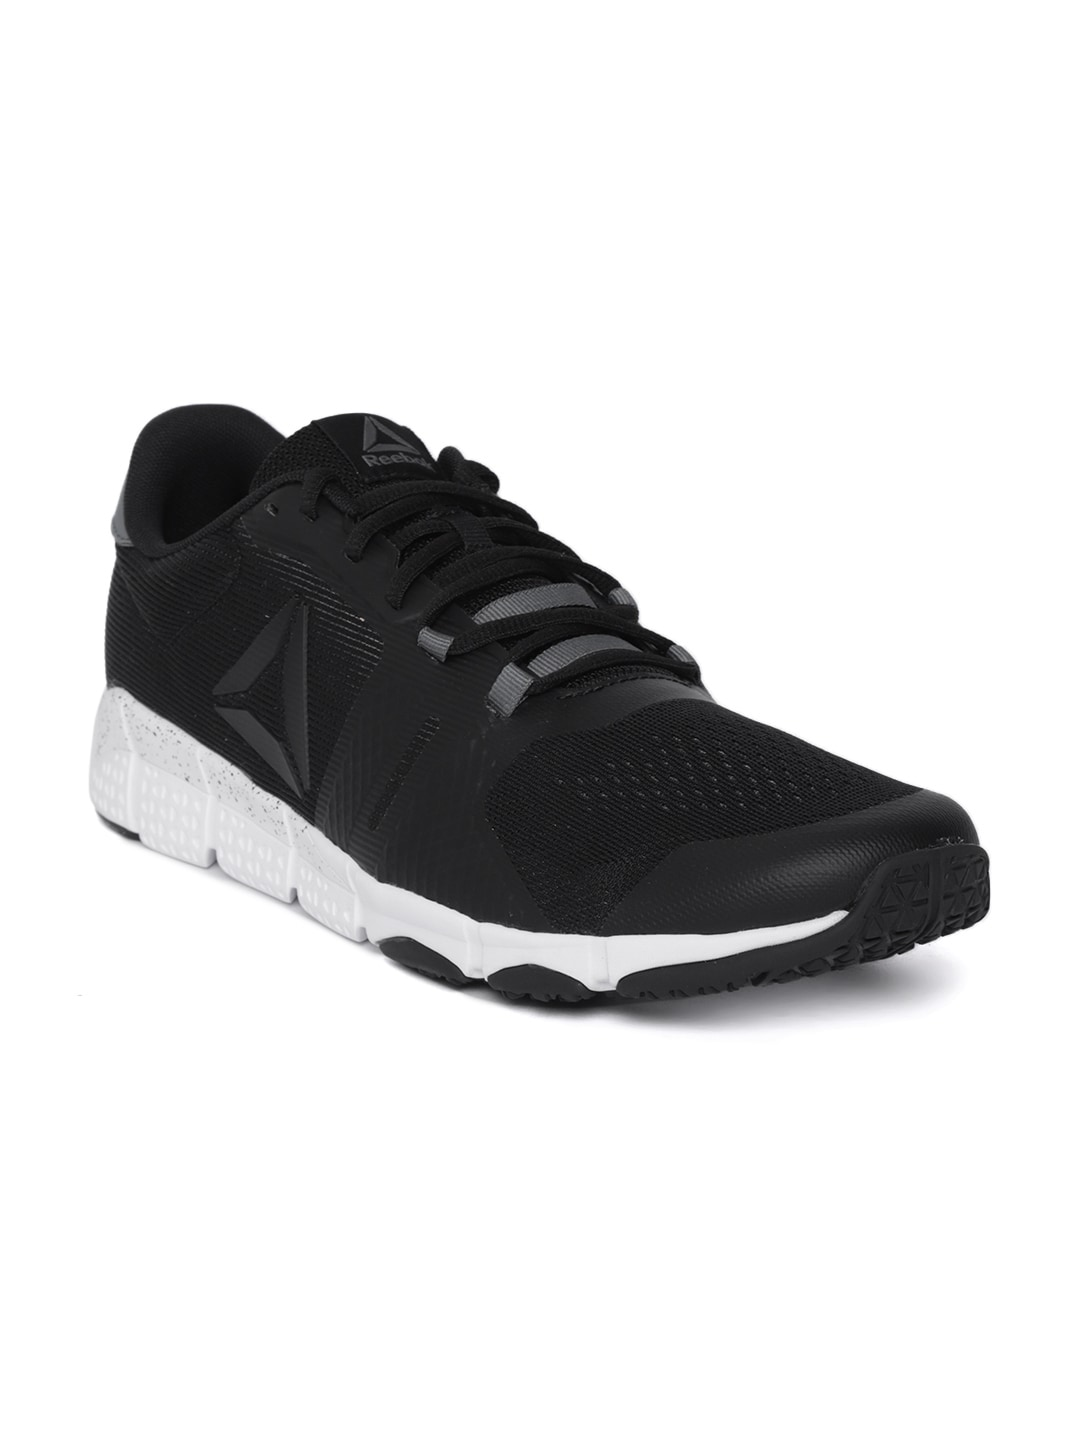 Reebok Footwear Sports Shoes Perfume And Body Mist - Buy Reebok Footwear  Sports Shoes Perfume And Body Mist online in India 92a35d9e5